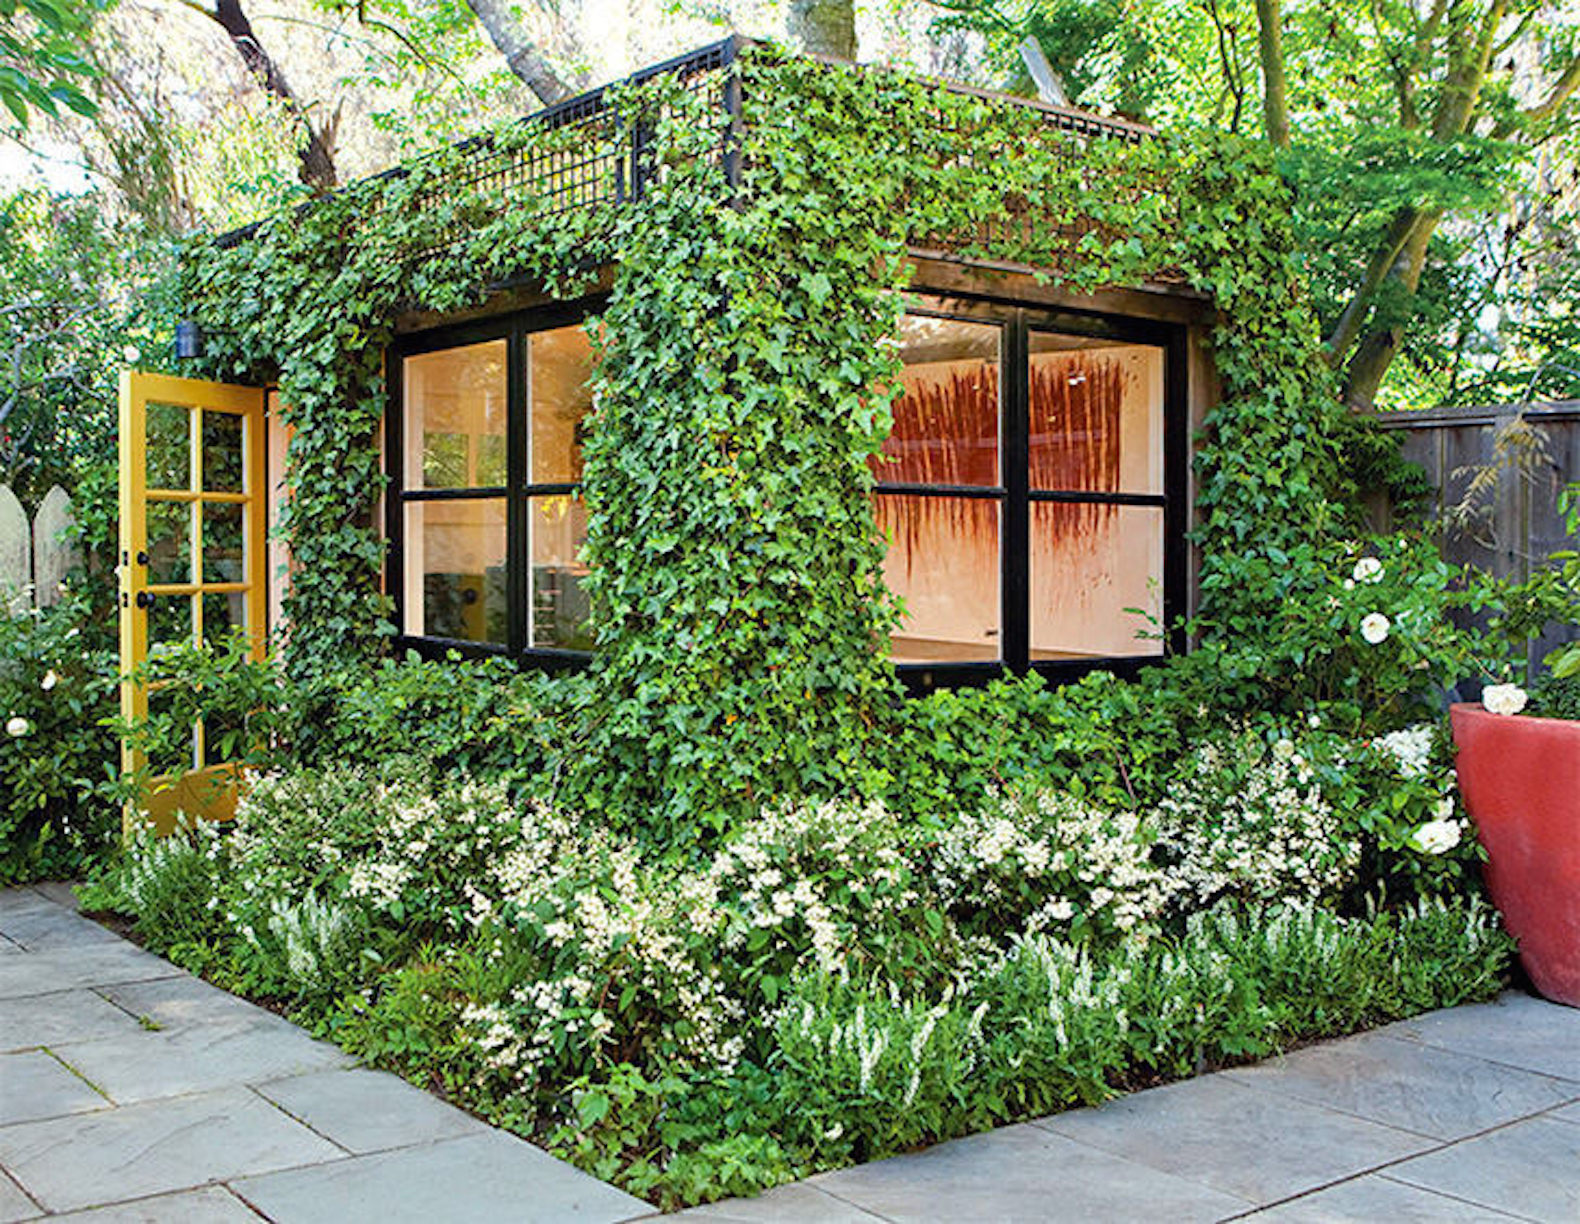 Delicieux This Lush, Green Backyard Office Is A Dream Artistu0027s Studio Hidden In A San  Francisco Garden